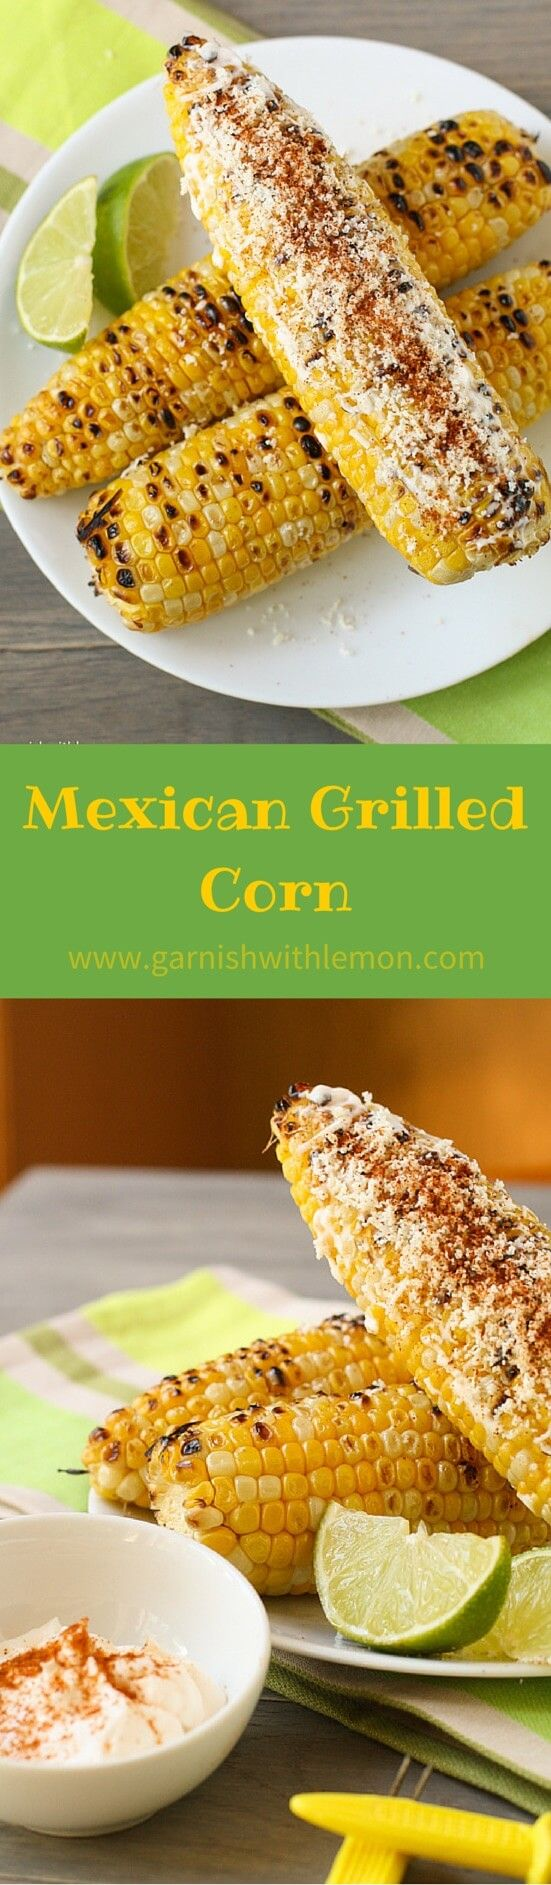 Nothing beats grilled corn, but change up this summer staple and serve this spicy, tangy Mexican Grilled Corn at your next BBQ! ~ http://www.garnishwithlemon.com